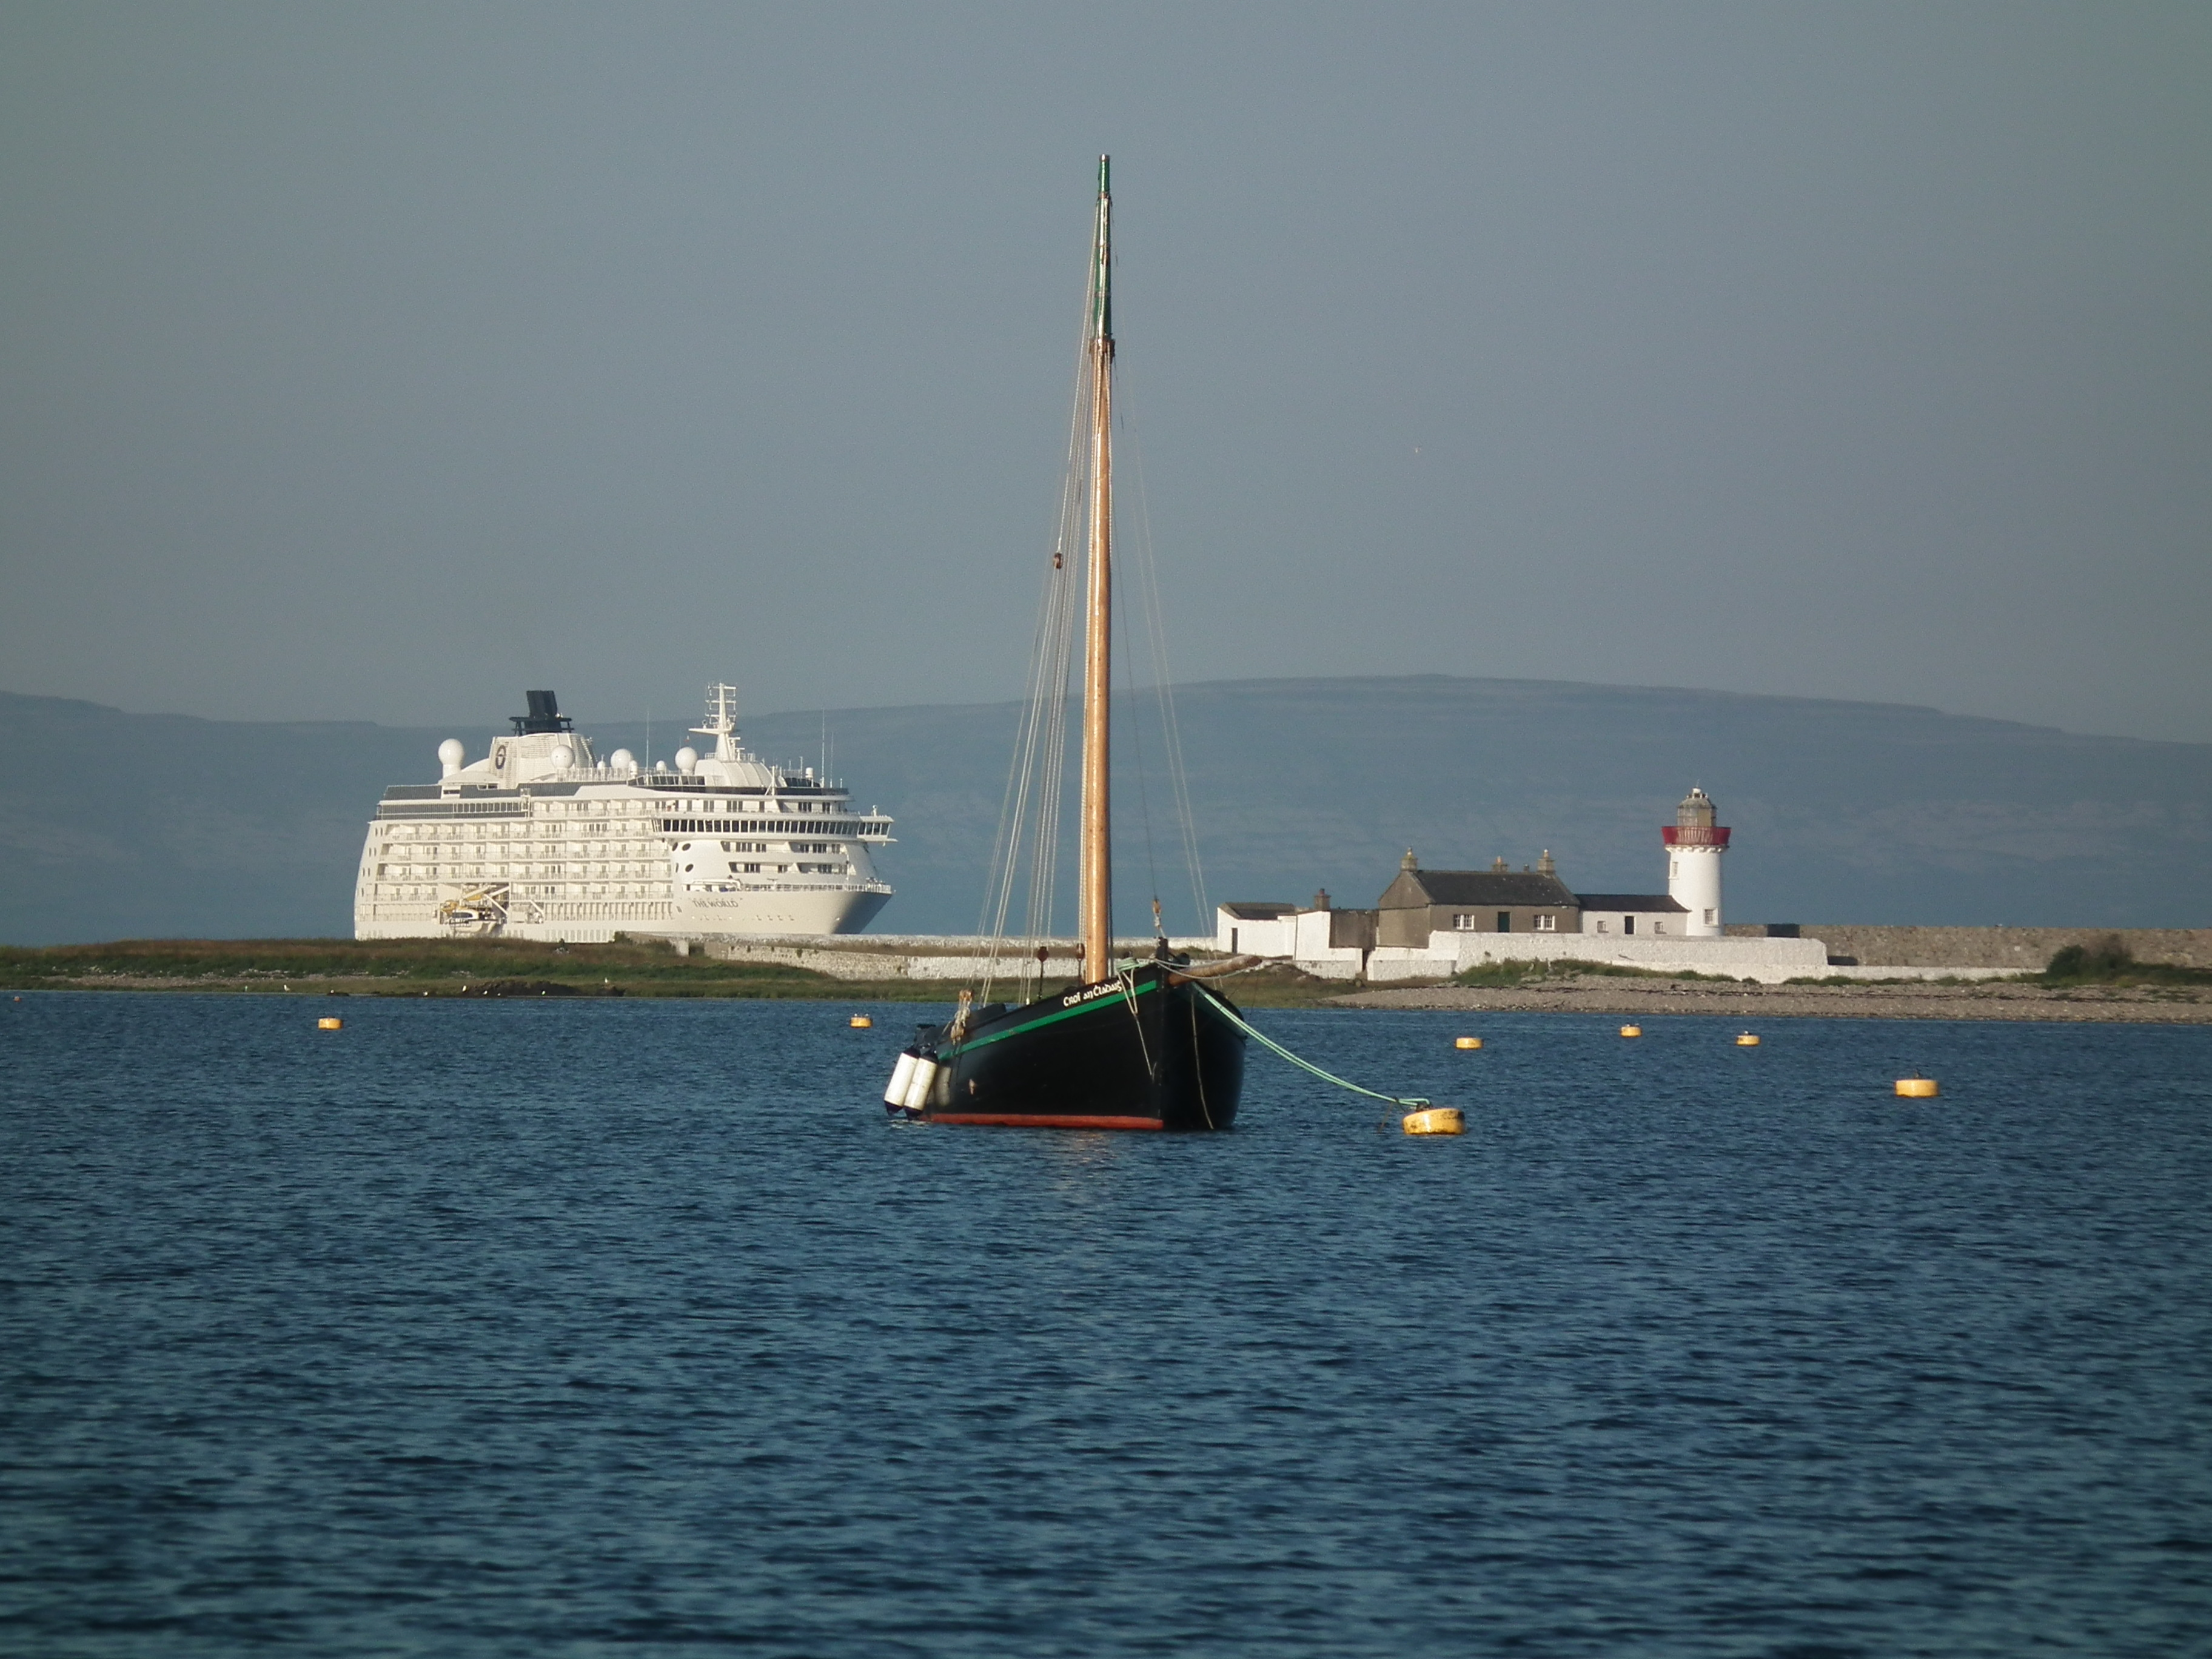 The World at anchor in Galway Bay in 2013